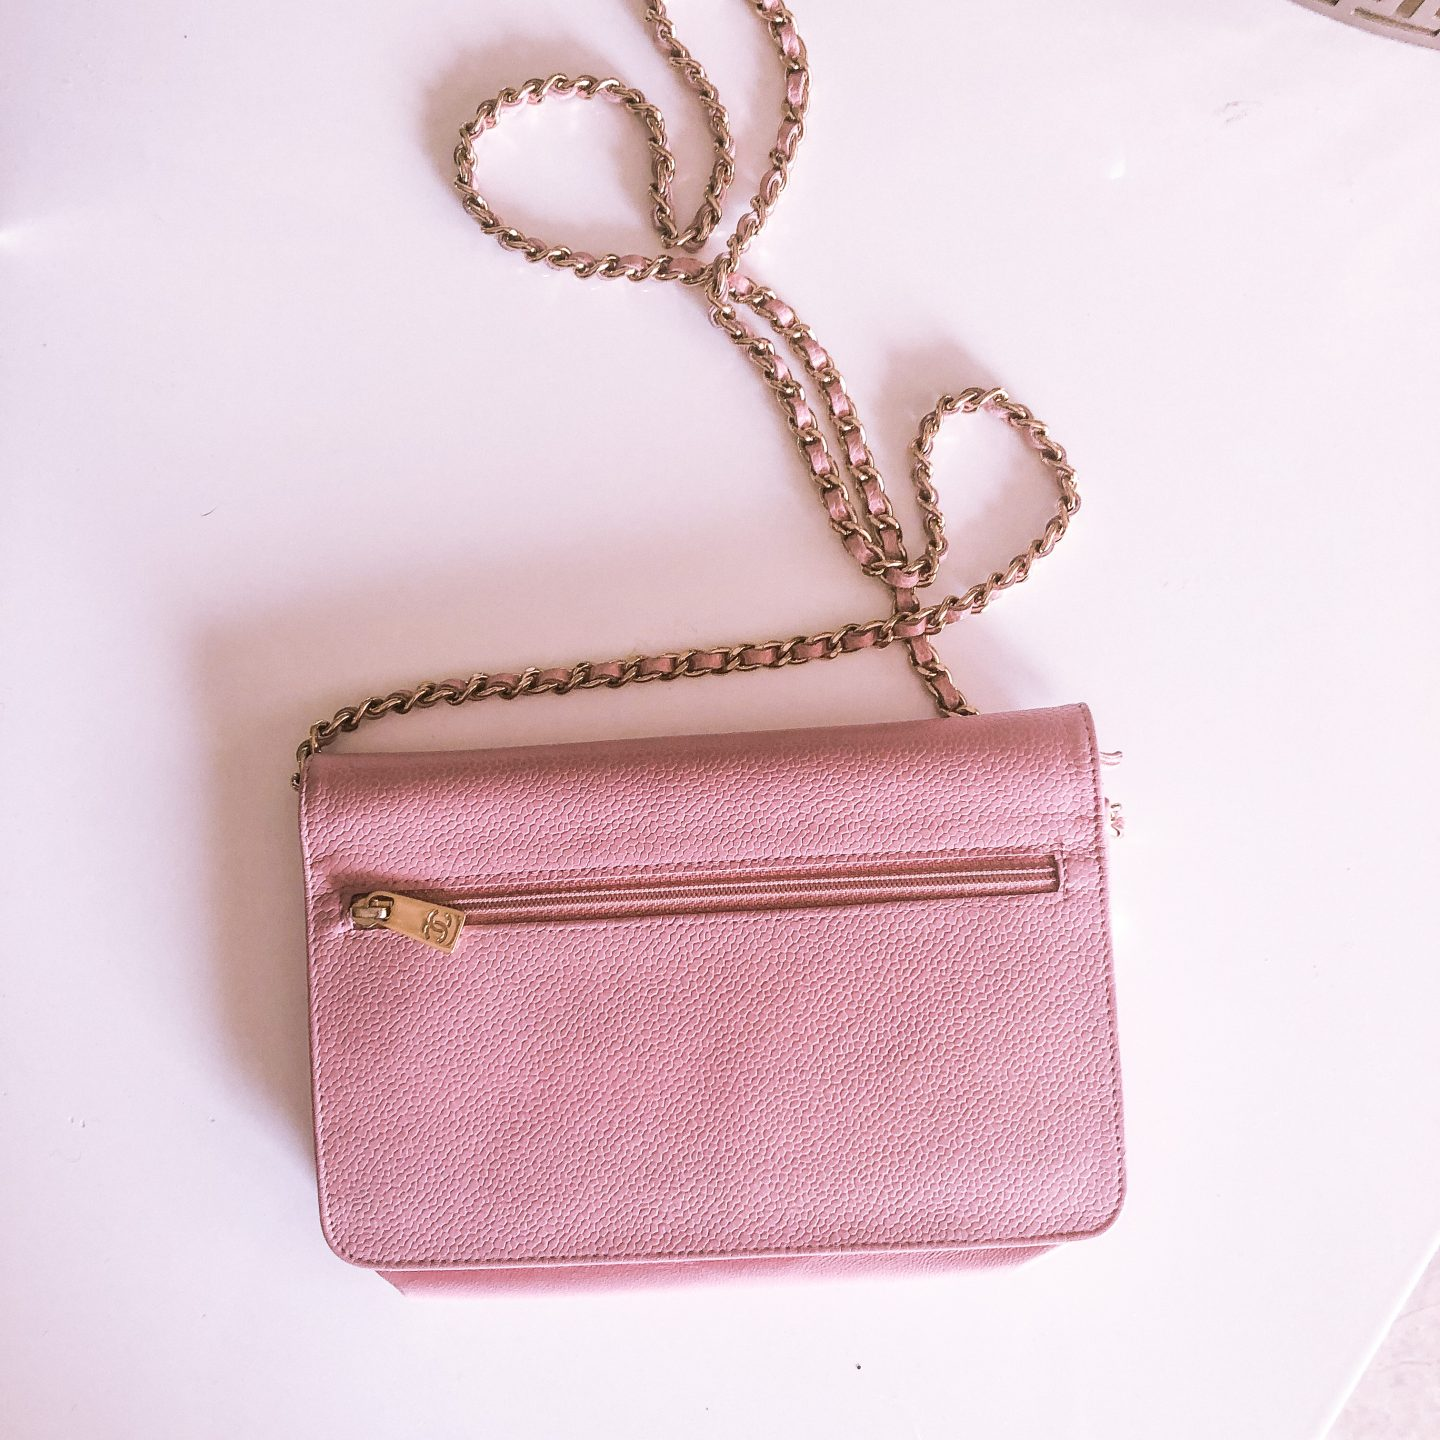 My First Chanel Bag, chanel wallet on chain, chanel classic wallet on chain, chanel woc, chanel pink woc, chanel pink wallet on chain, pink classic wallet on chain, pink chanel bag